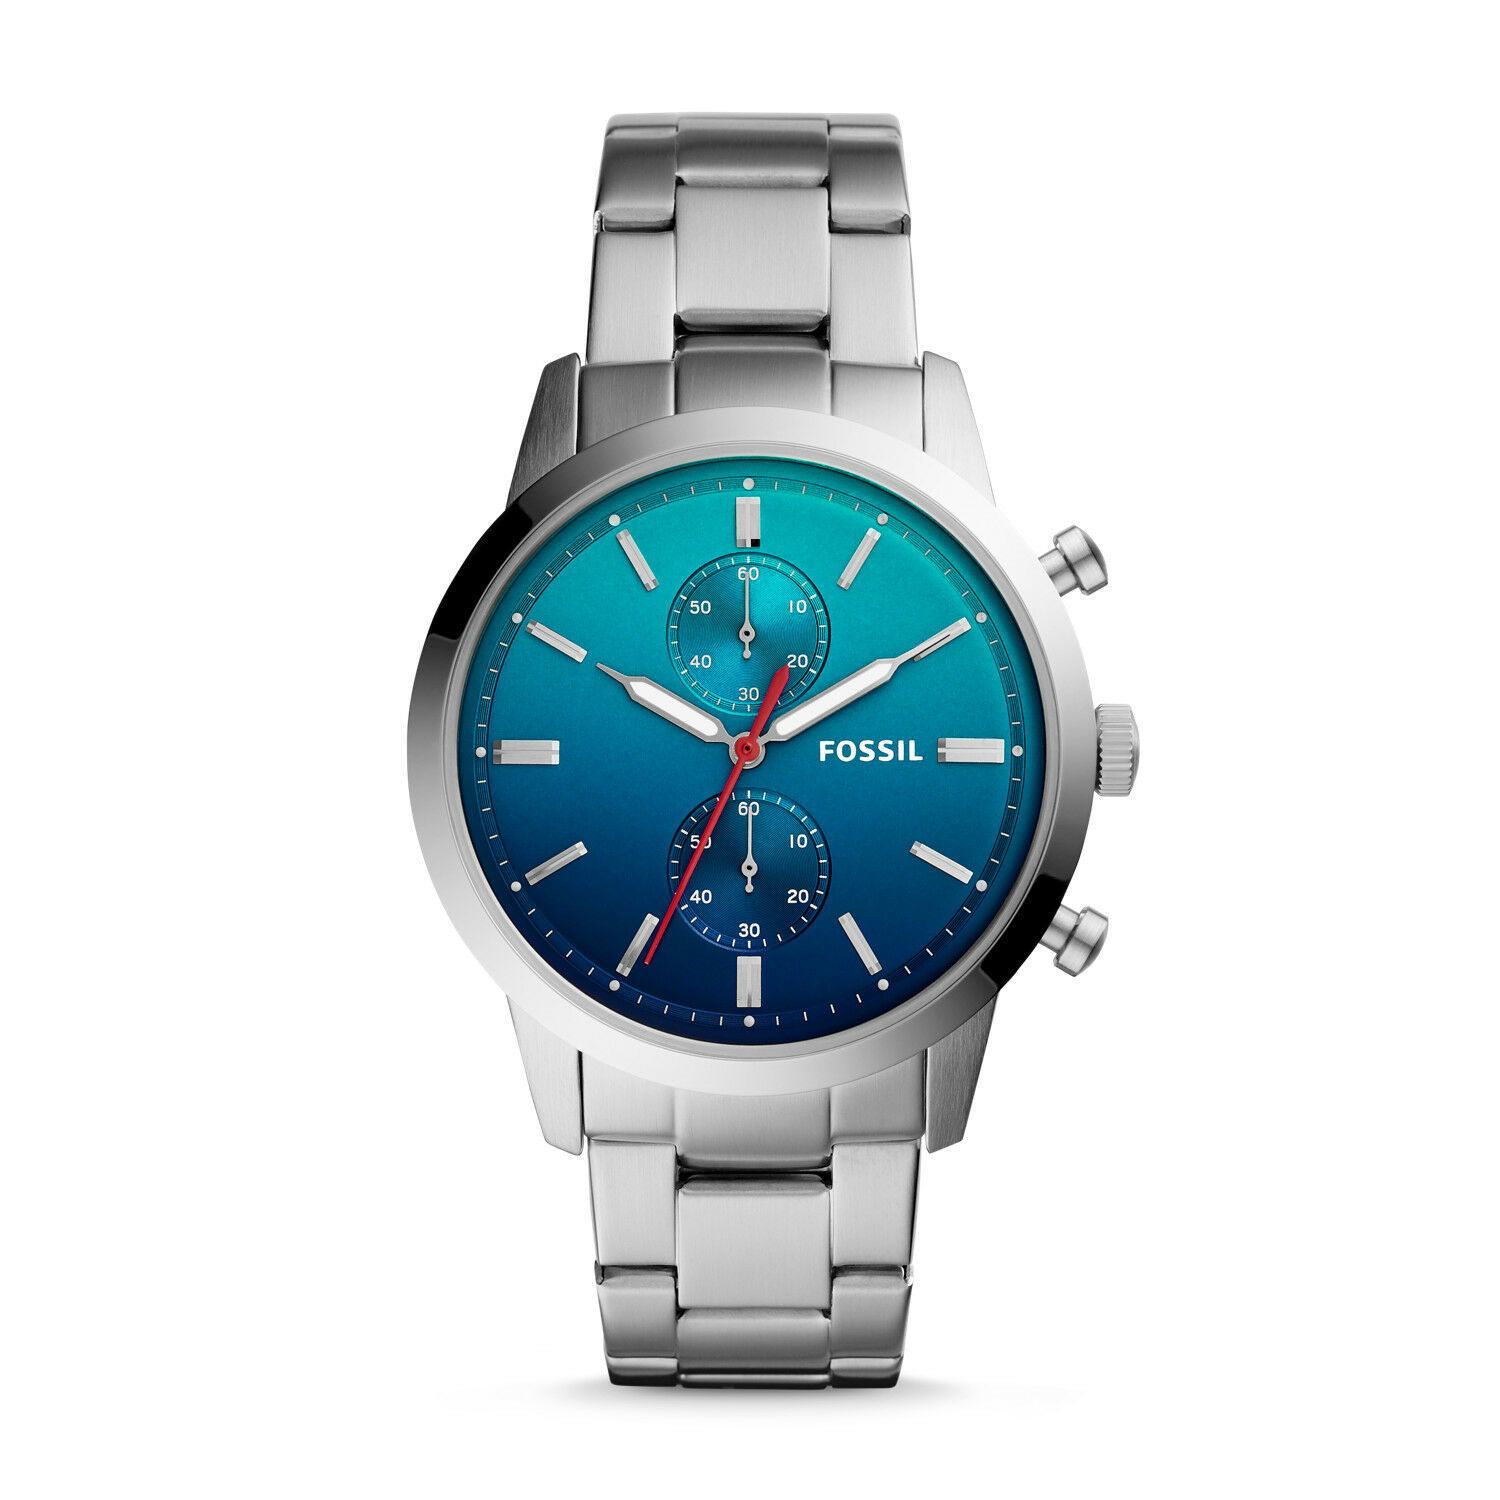 New Fossil Men's Townsman Chronograph Stainless Steel Watch Variety Color image 6